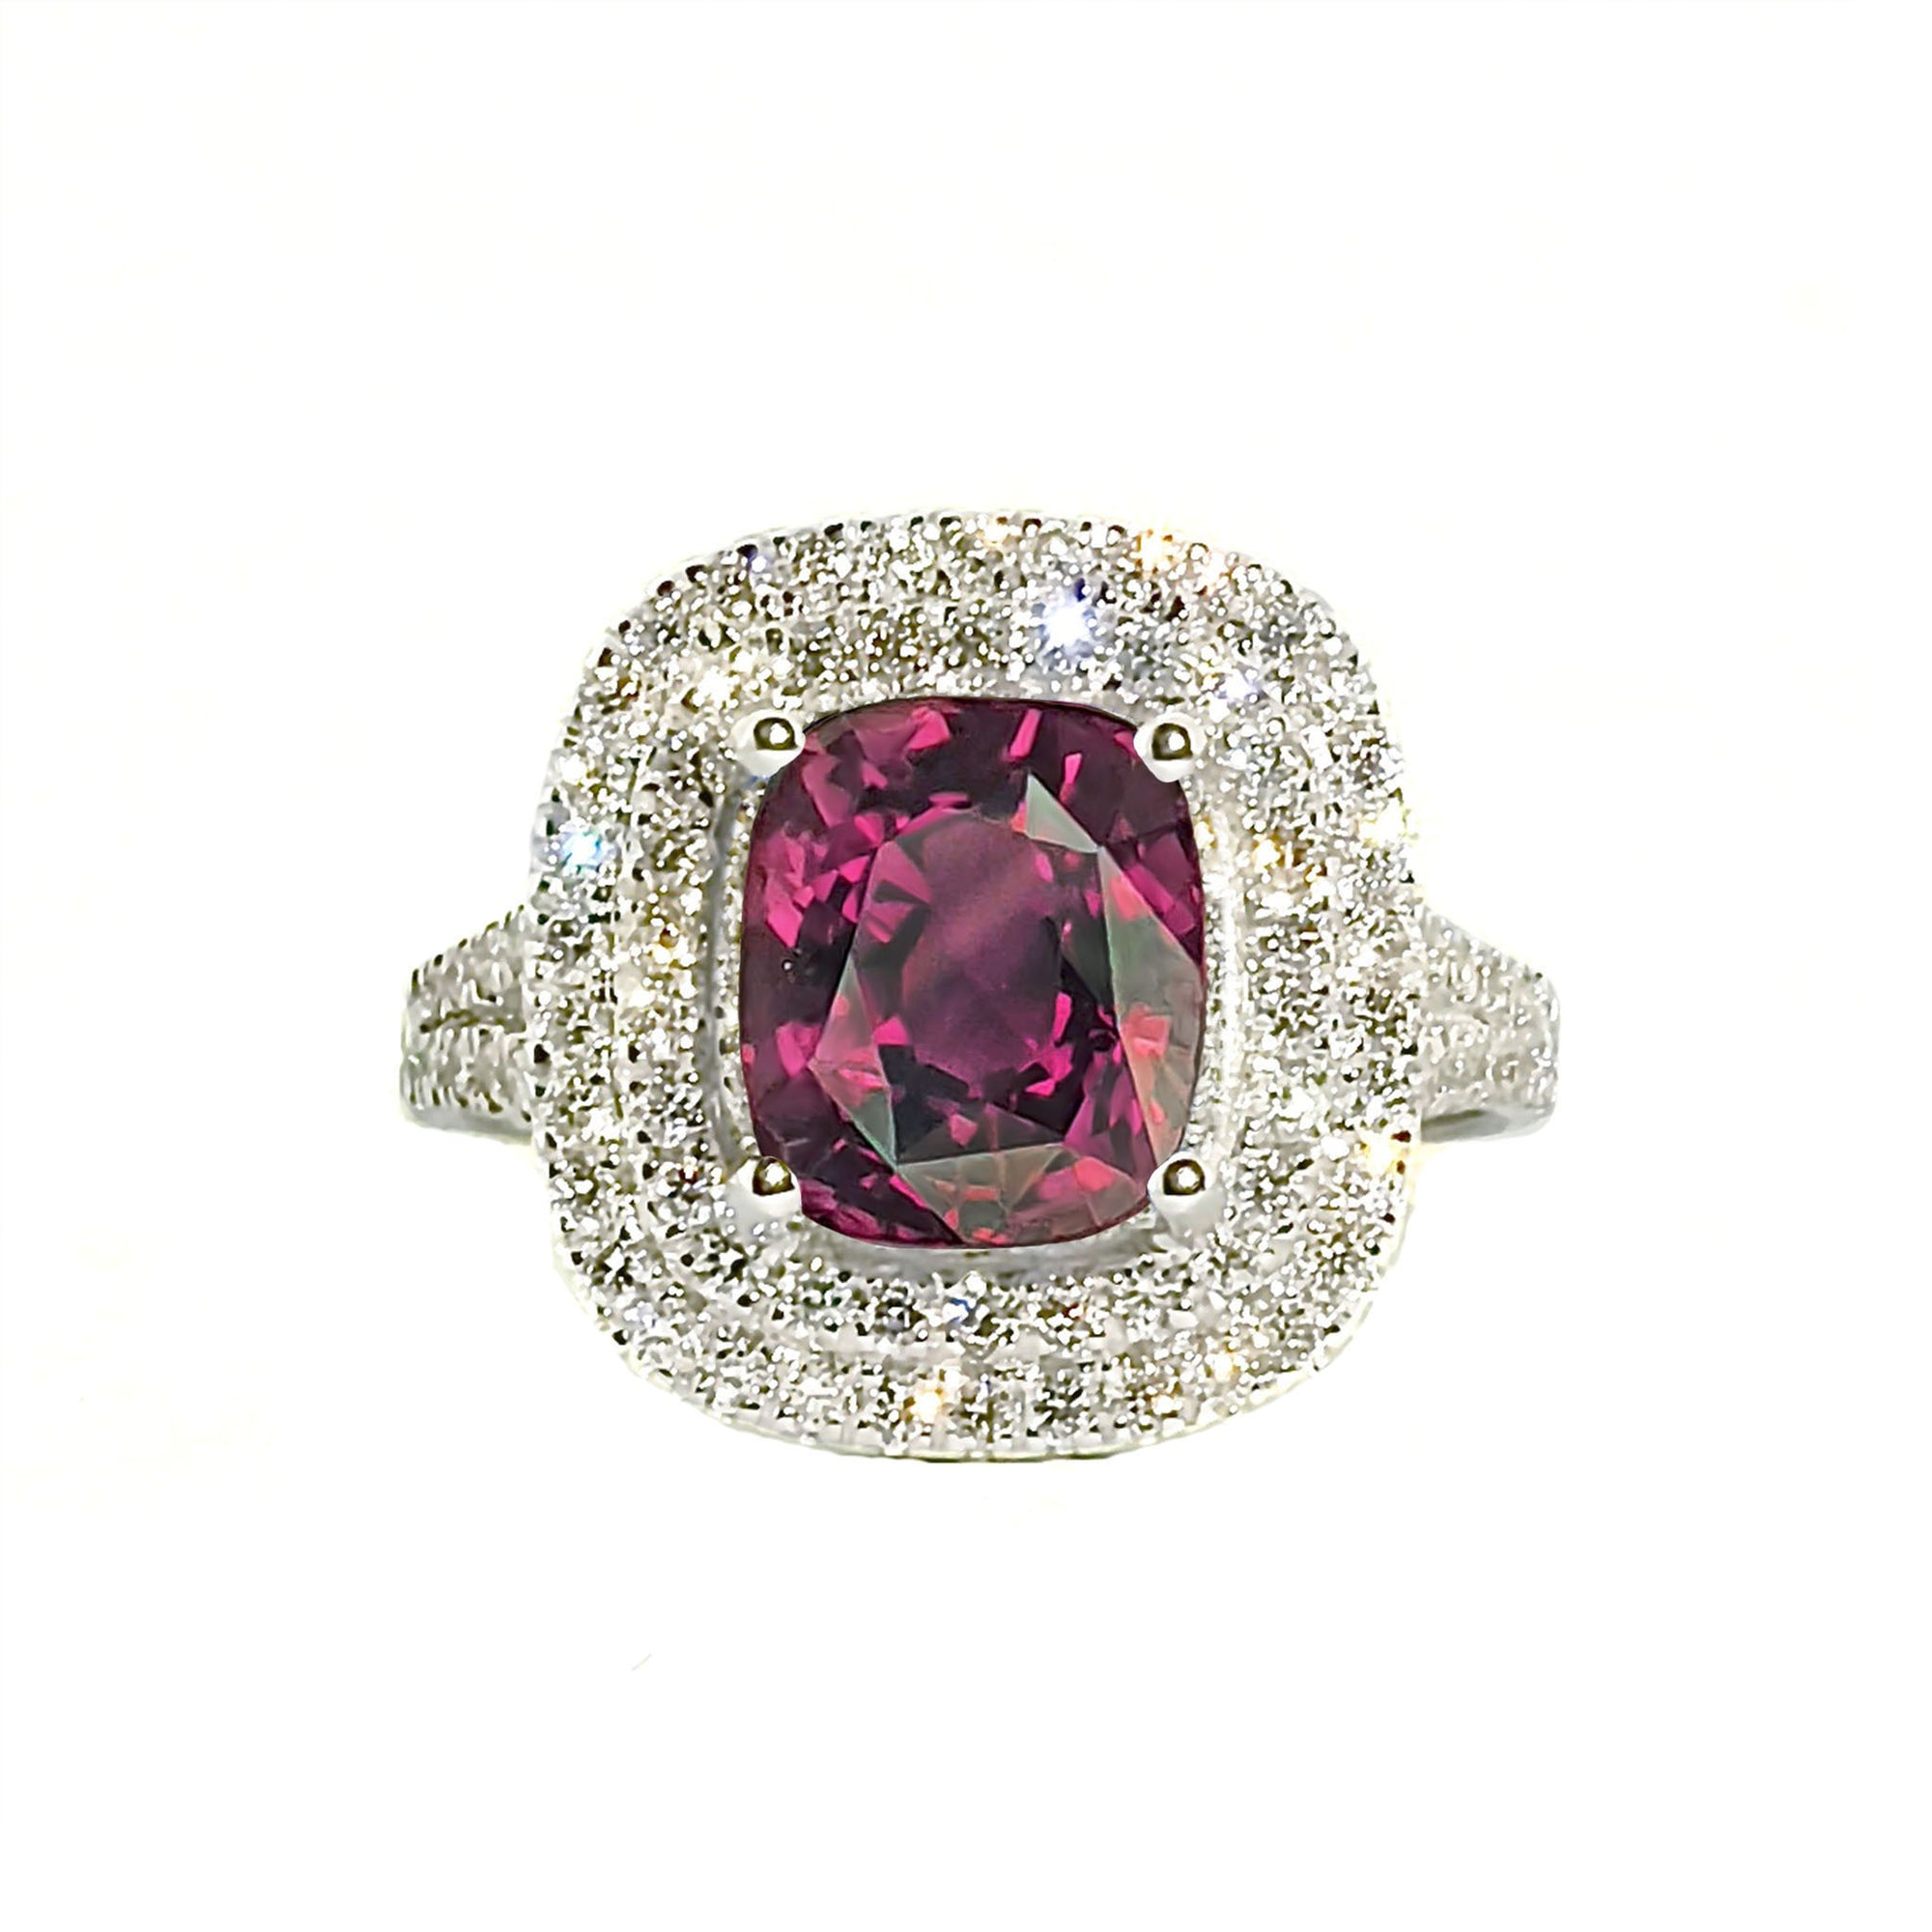 Anthio Double Halo Ring - Pink Long Cushion 2019-69